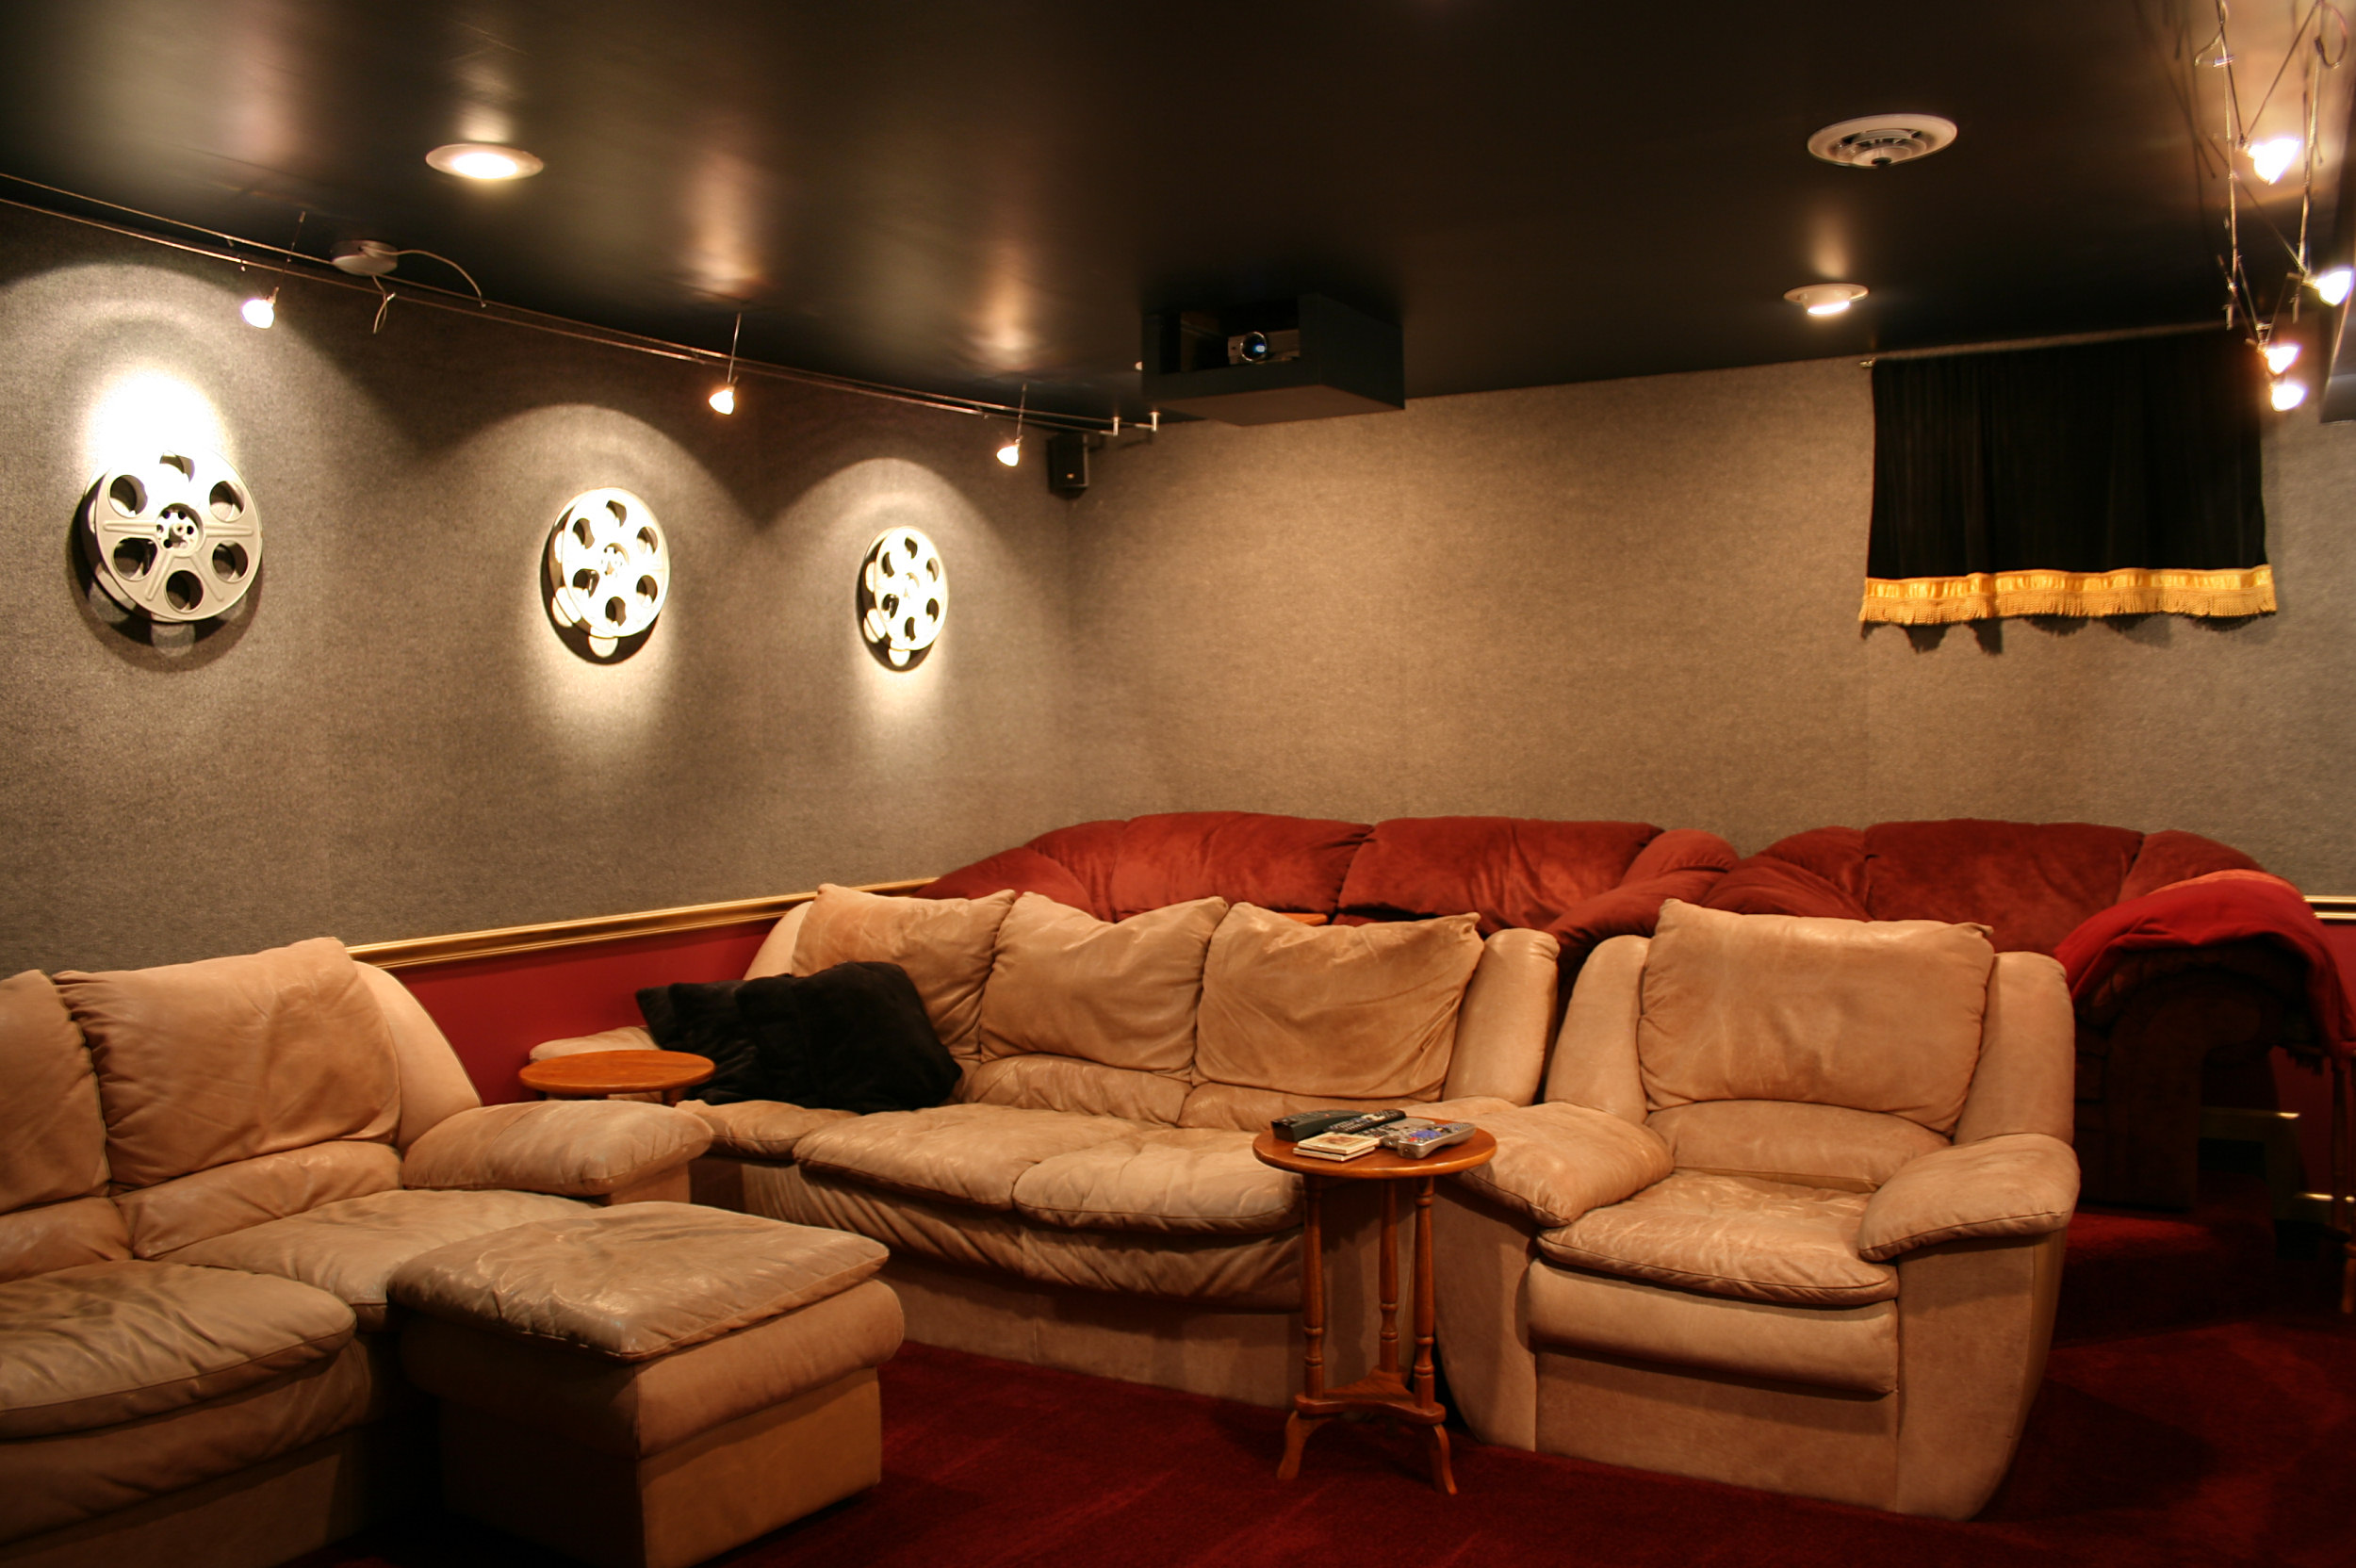 home theatre sofas india mattress topper suitable for sofa bed file theater tysto jpg wikimedia commons